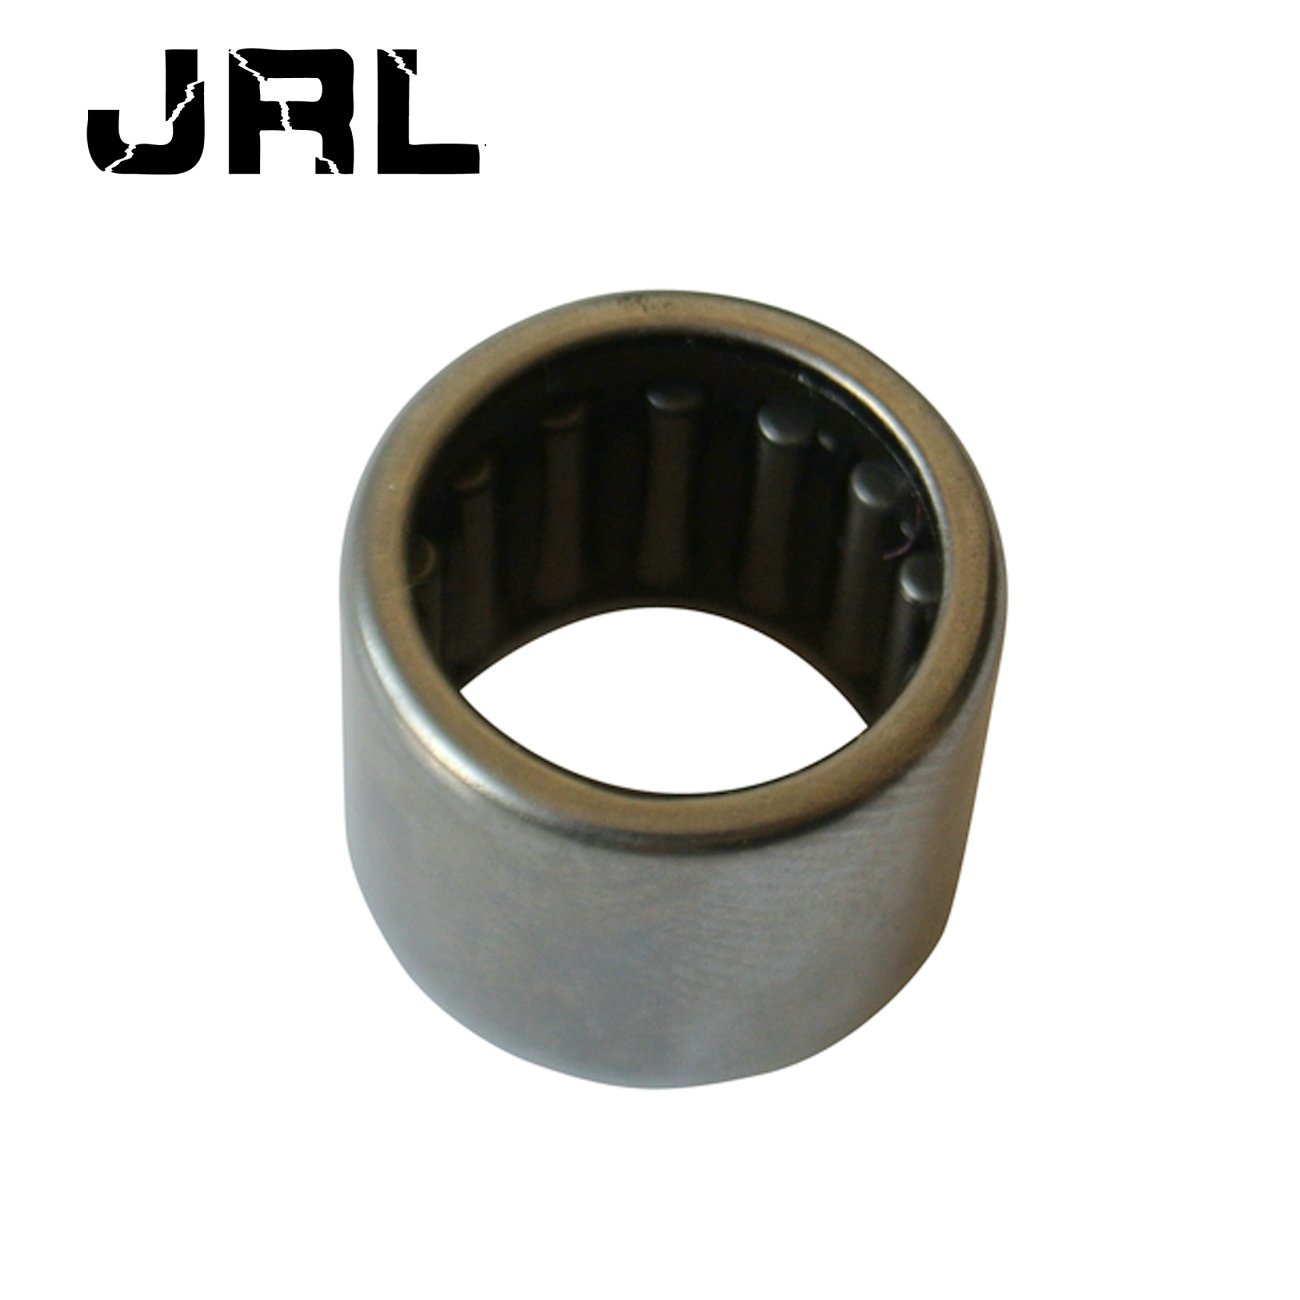 JRL New Sprocket Needle Bearing To Fit Husqvarna Chainsaw 36 41 136 137 141 142